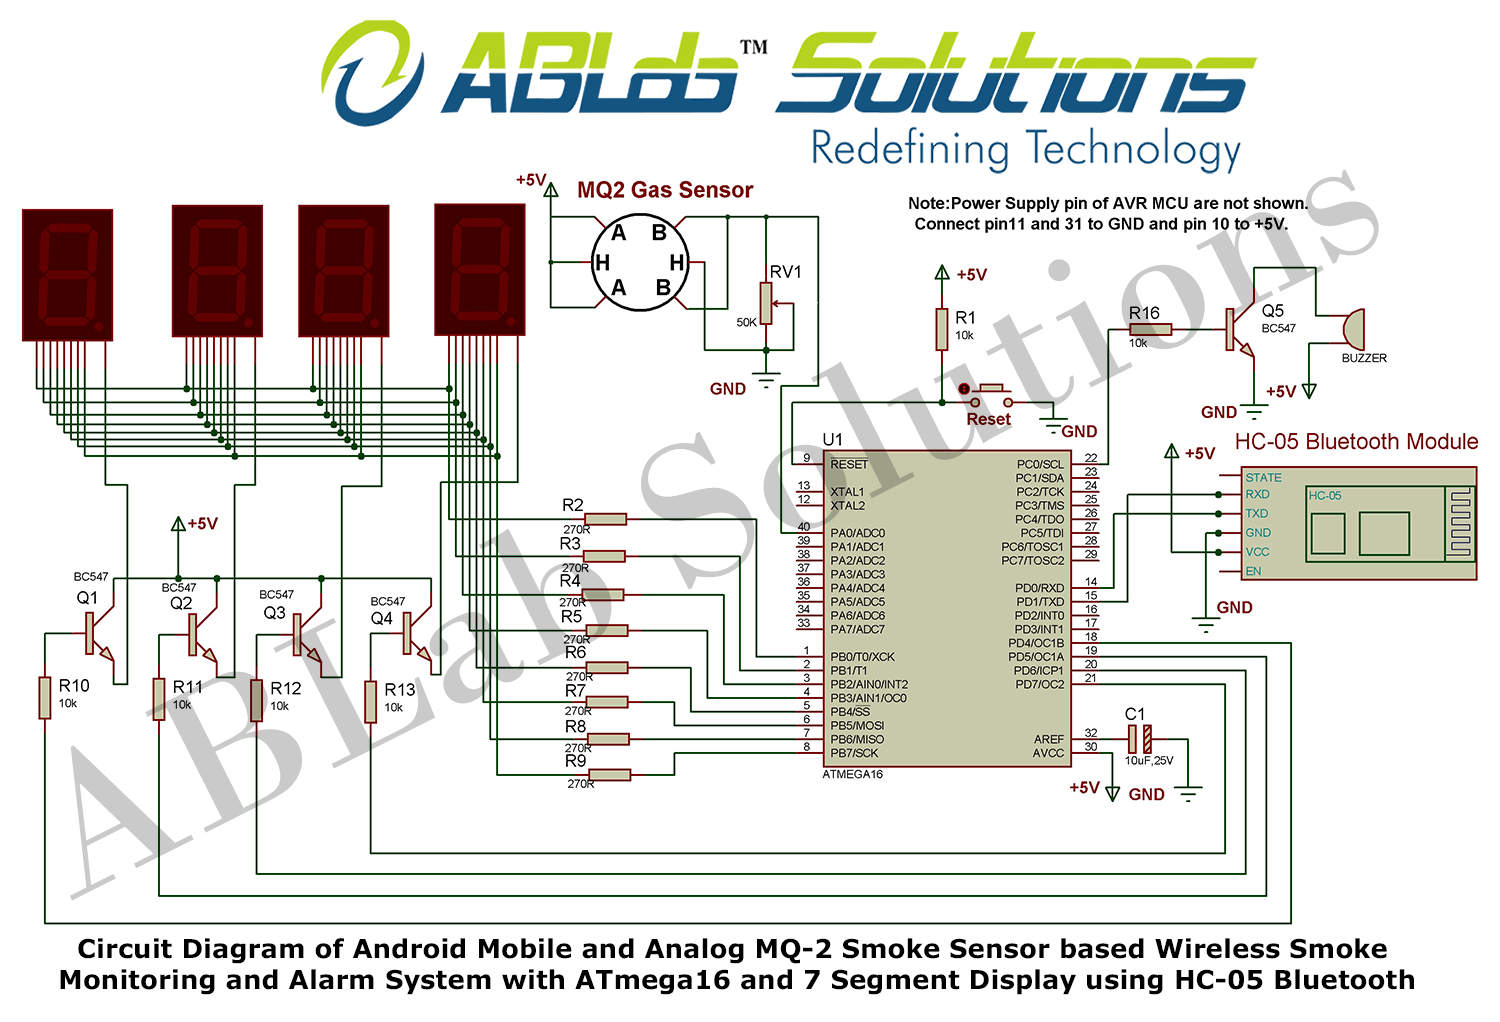 hight resolution of avr microcontroller based fire alarm circuit diagram schema wiring android mobile and analog mq 2 smoke